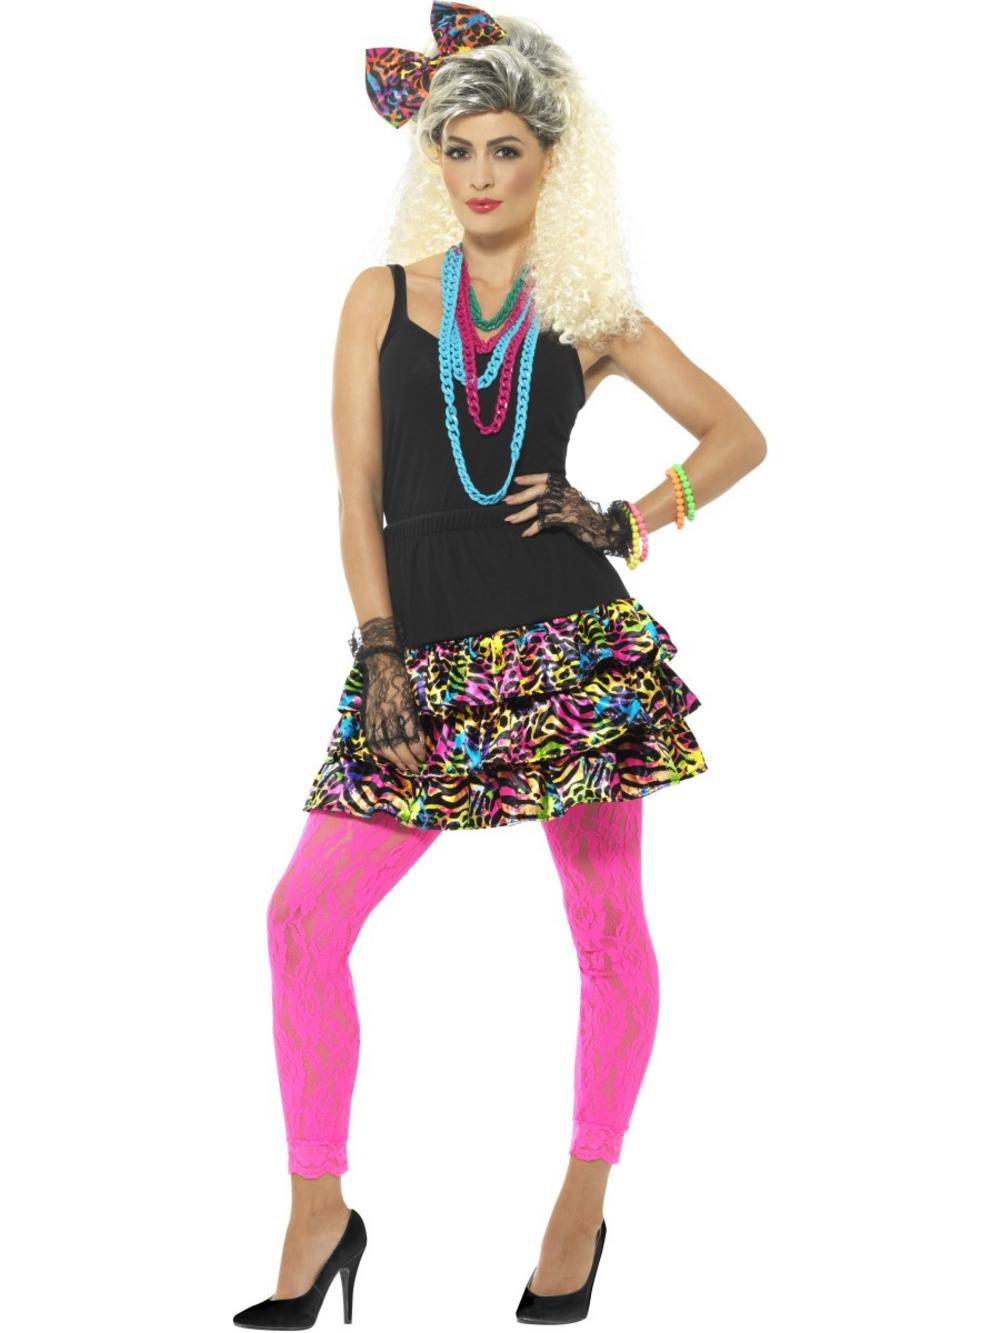 images How to Dress for an 80s Party